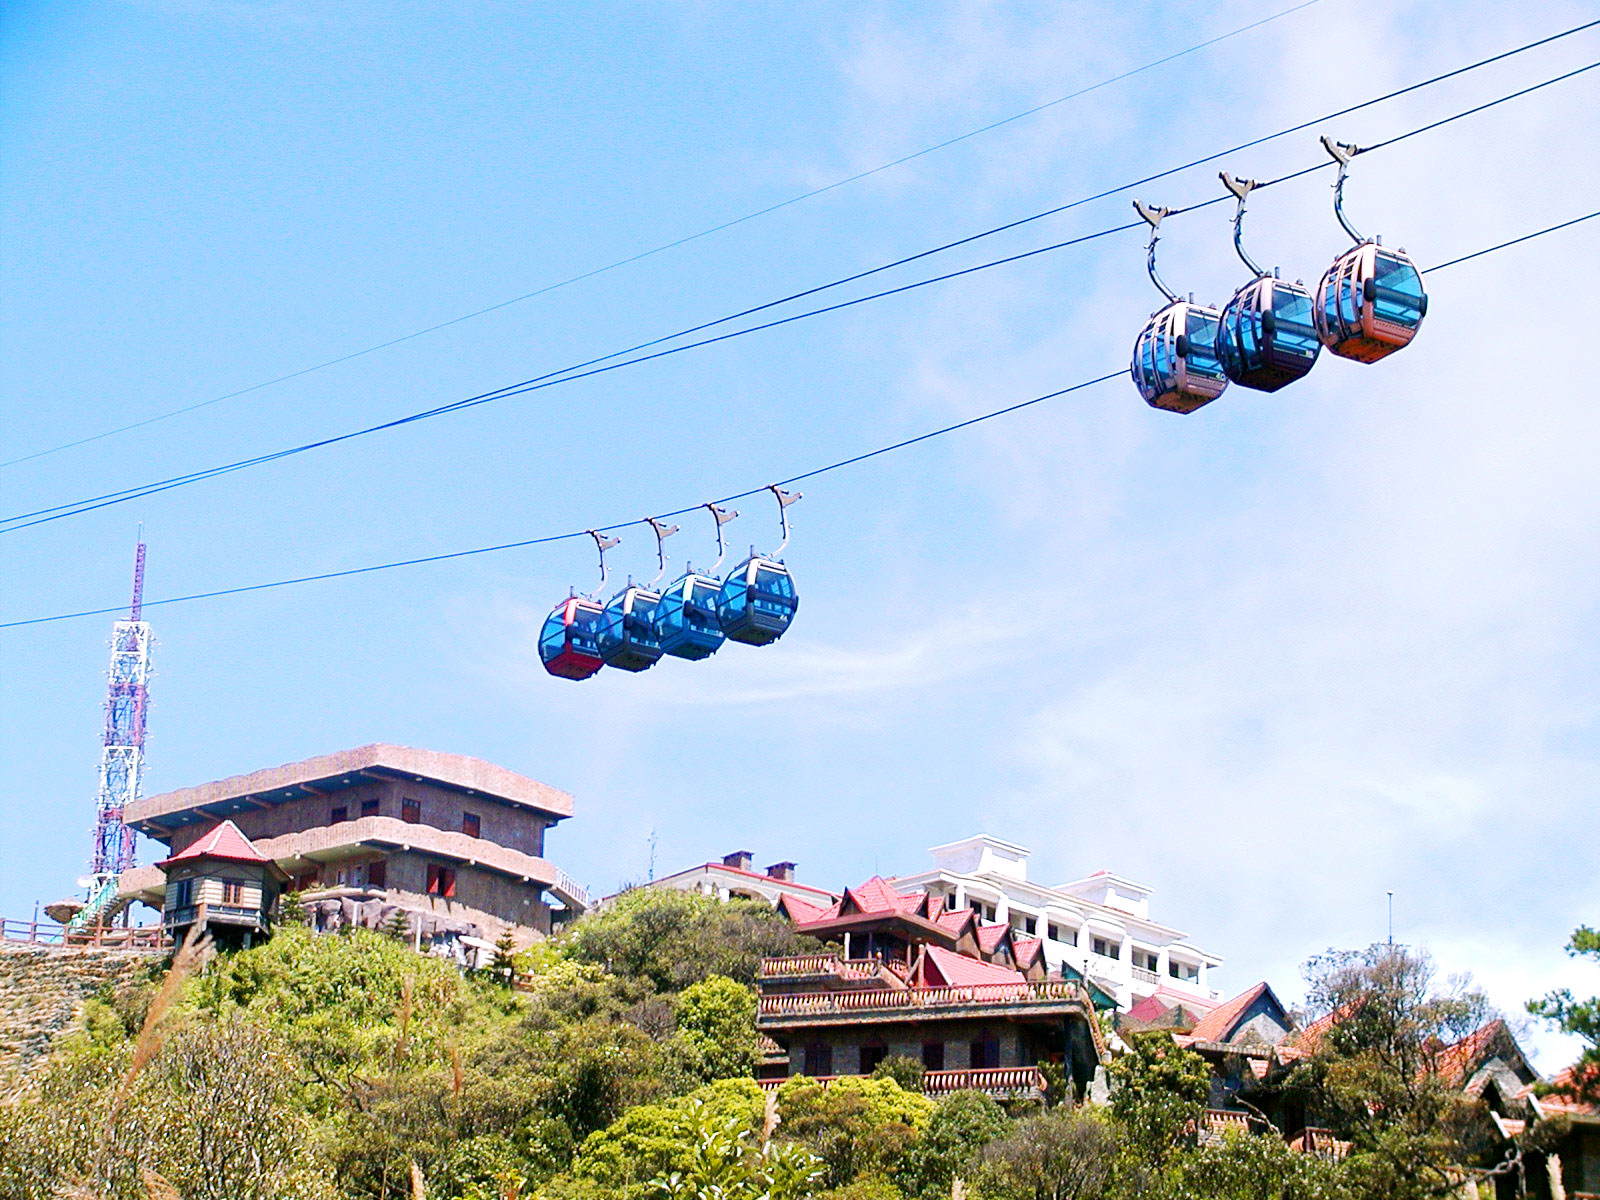 the longest and non-stoppable cable car